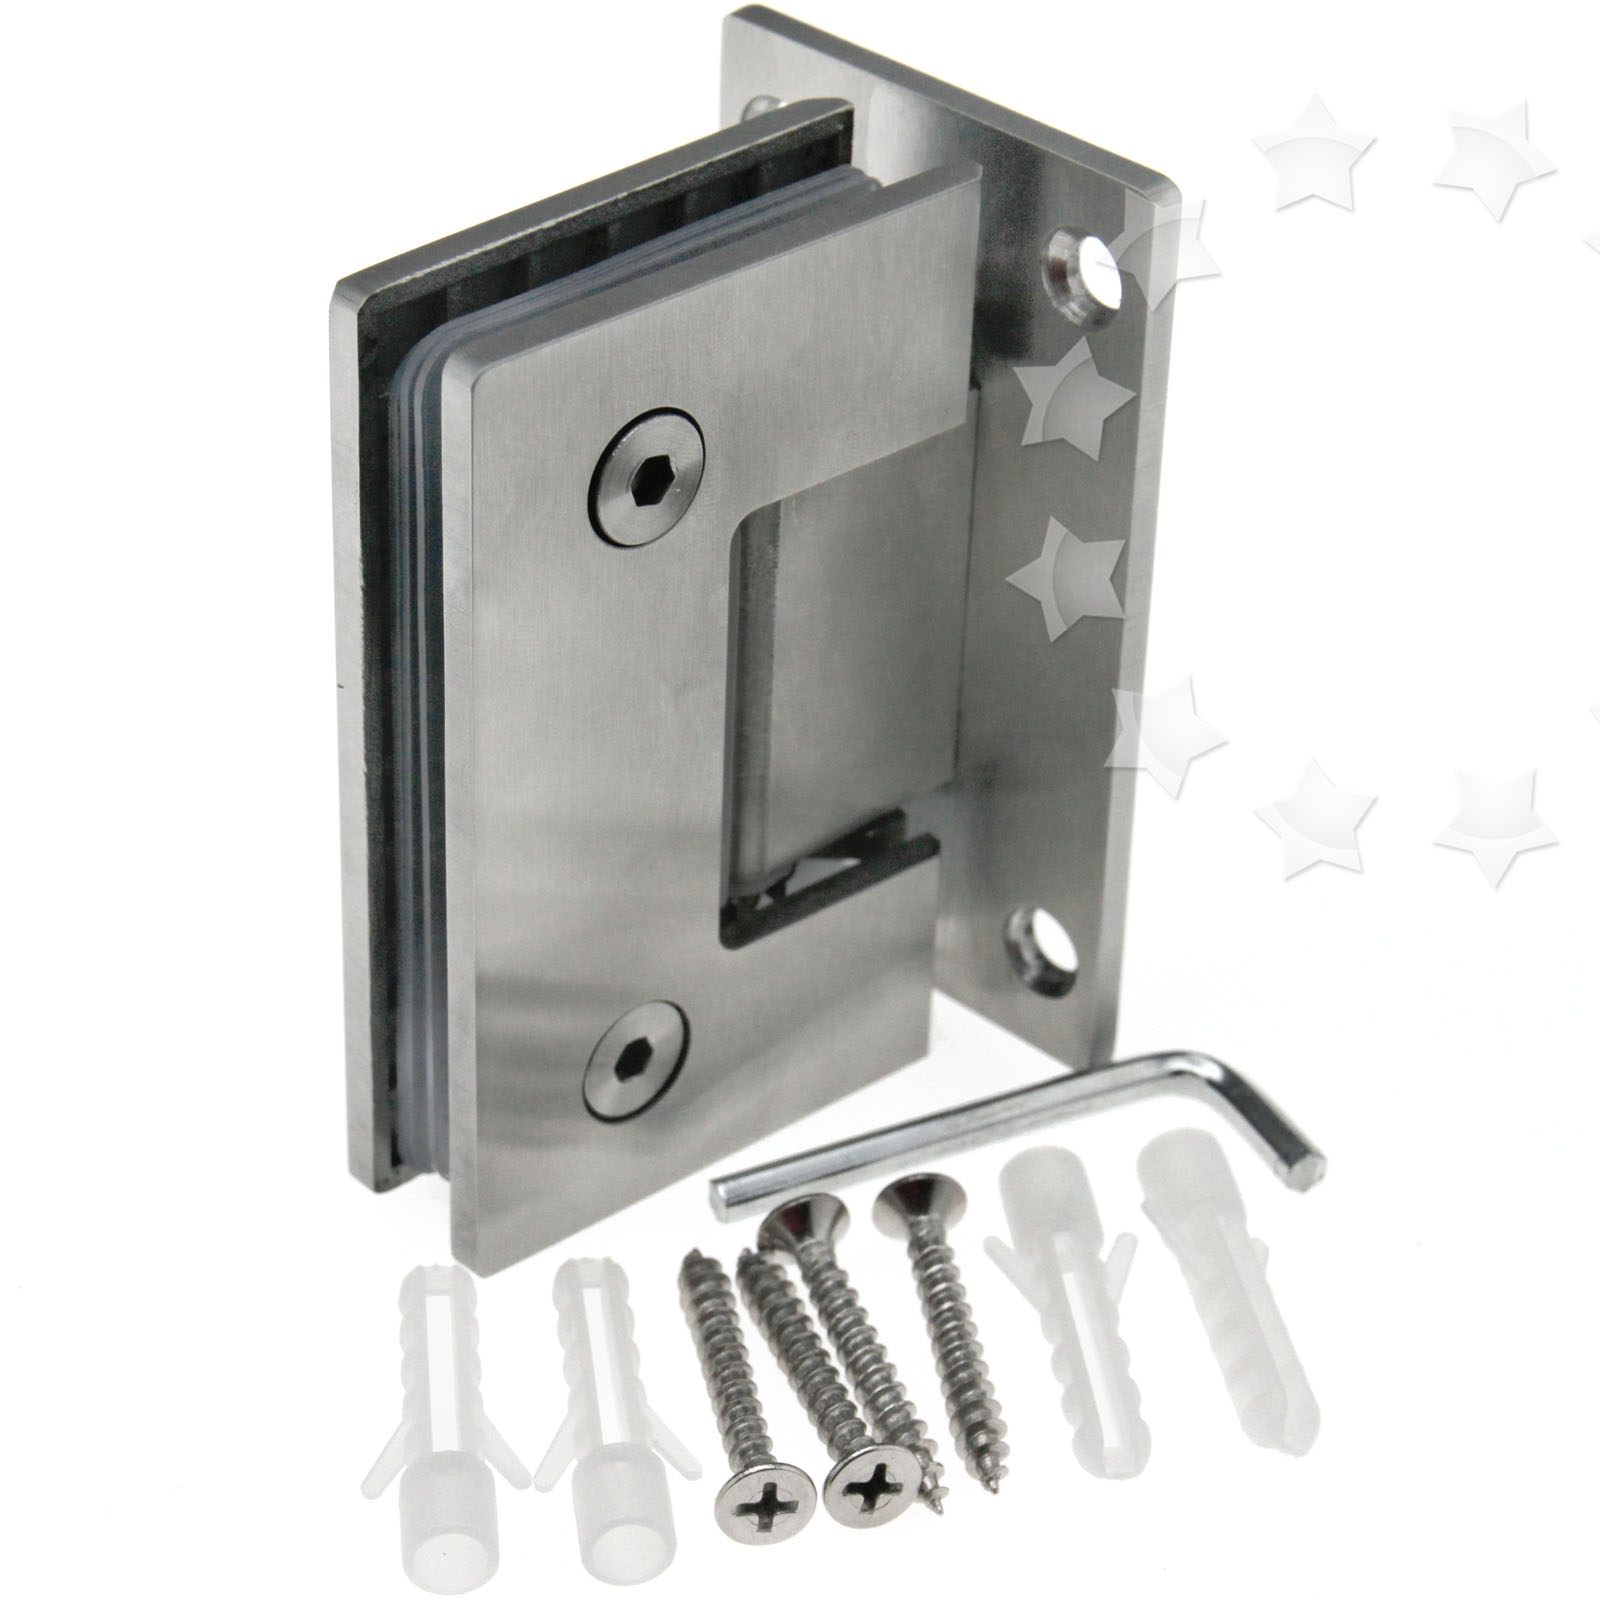 Glass Shower Door Hinges : New bracket frameless wall to glass shower door hinge